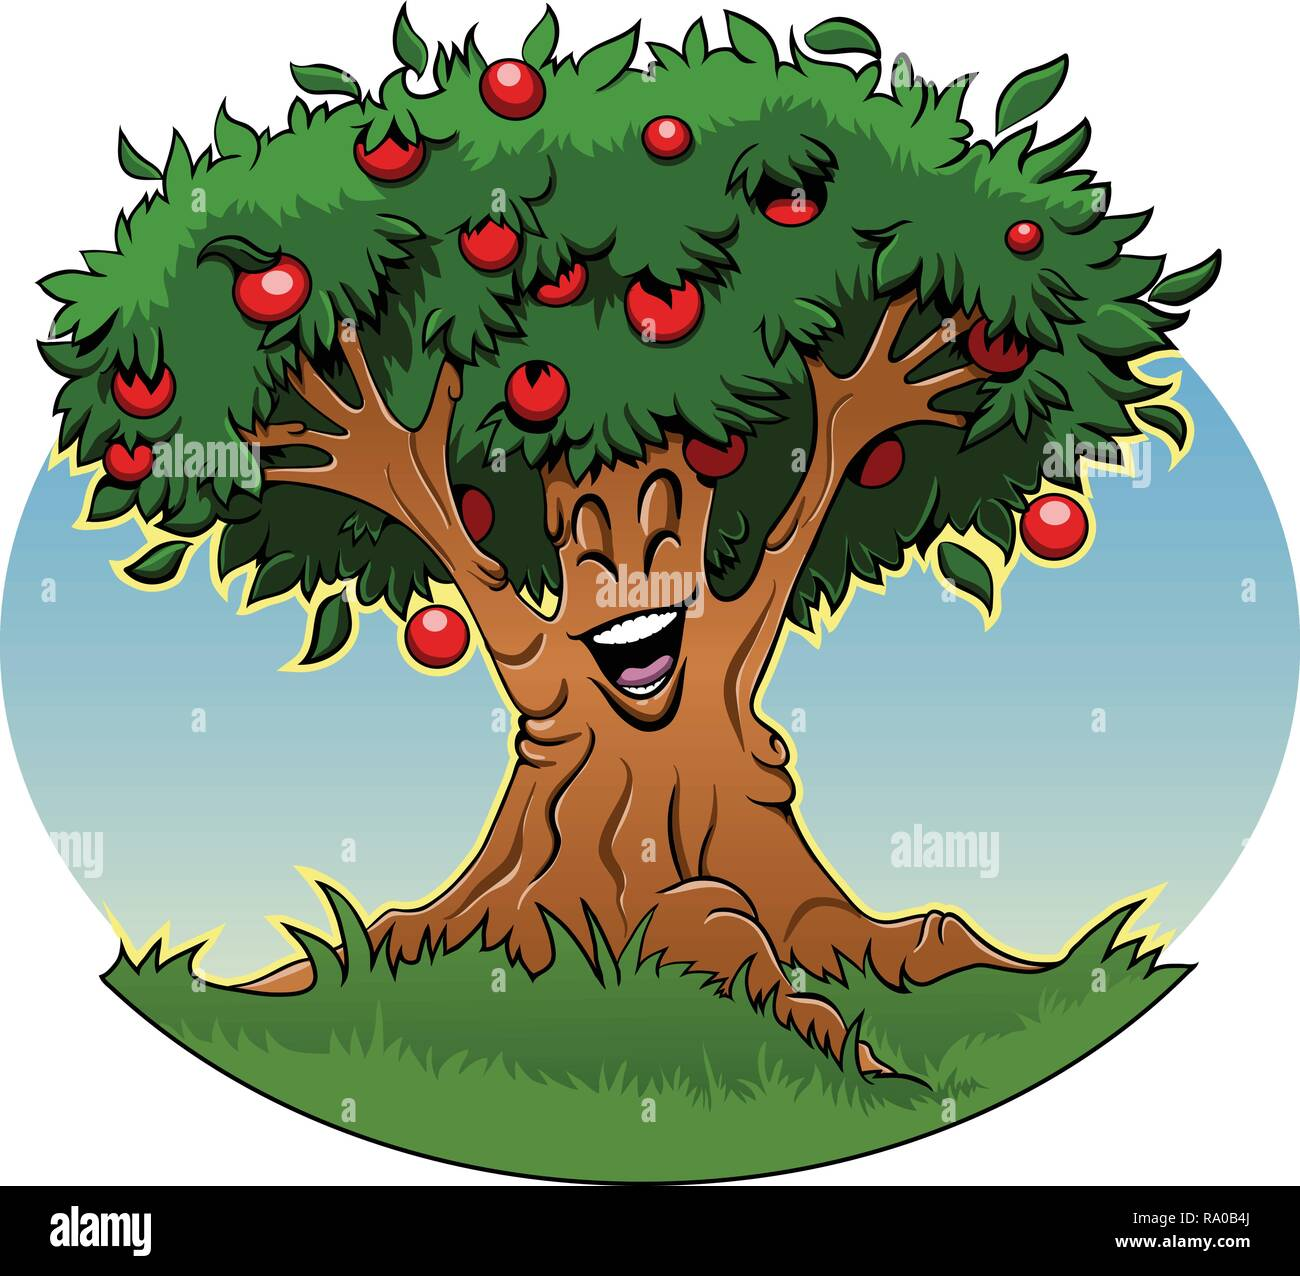 Cartoon illustration: Smiling apple tree spreading its branches - Stock Vector